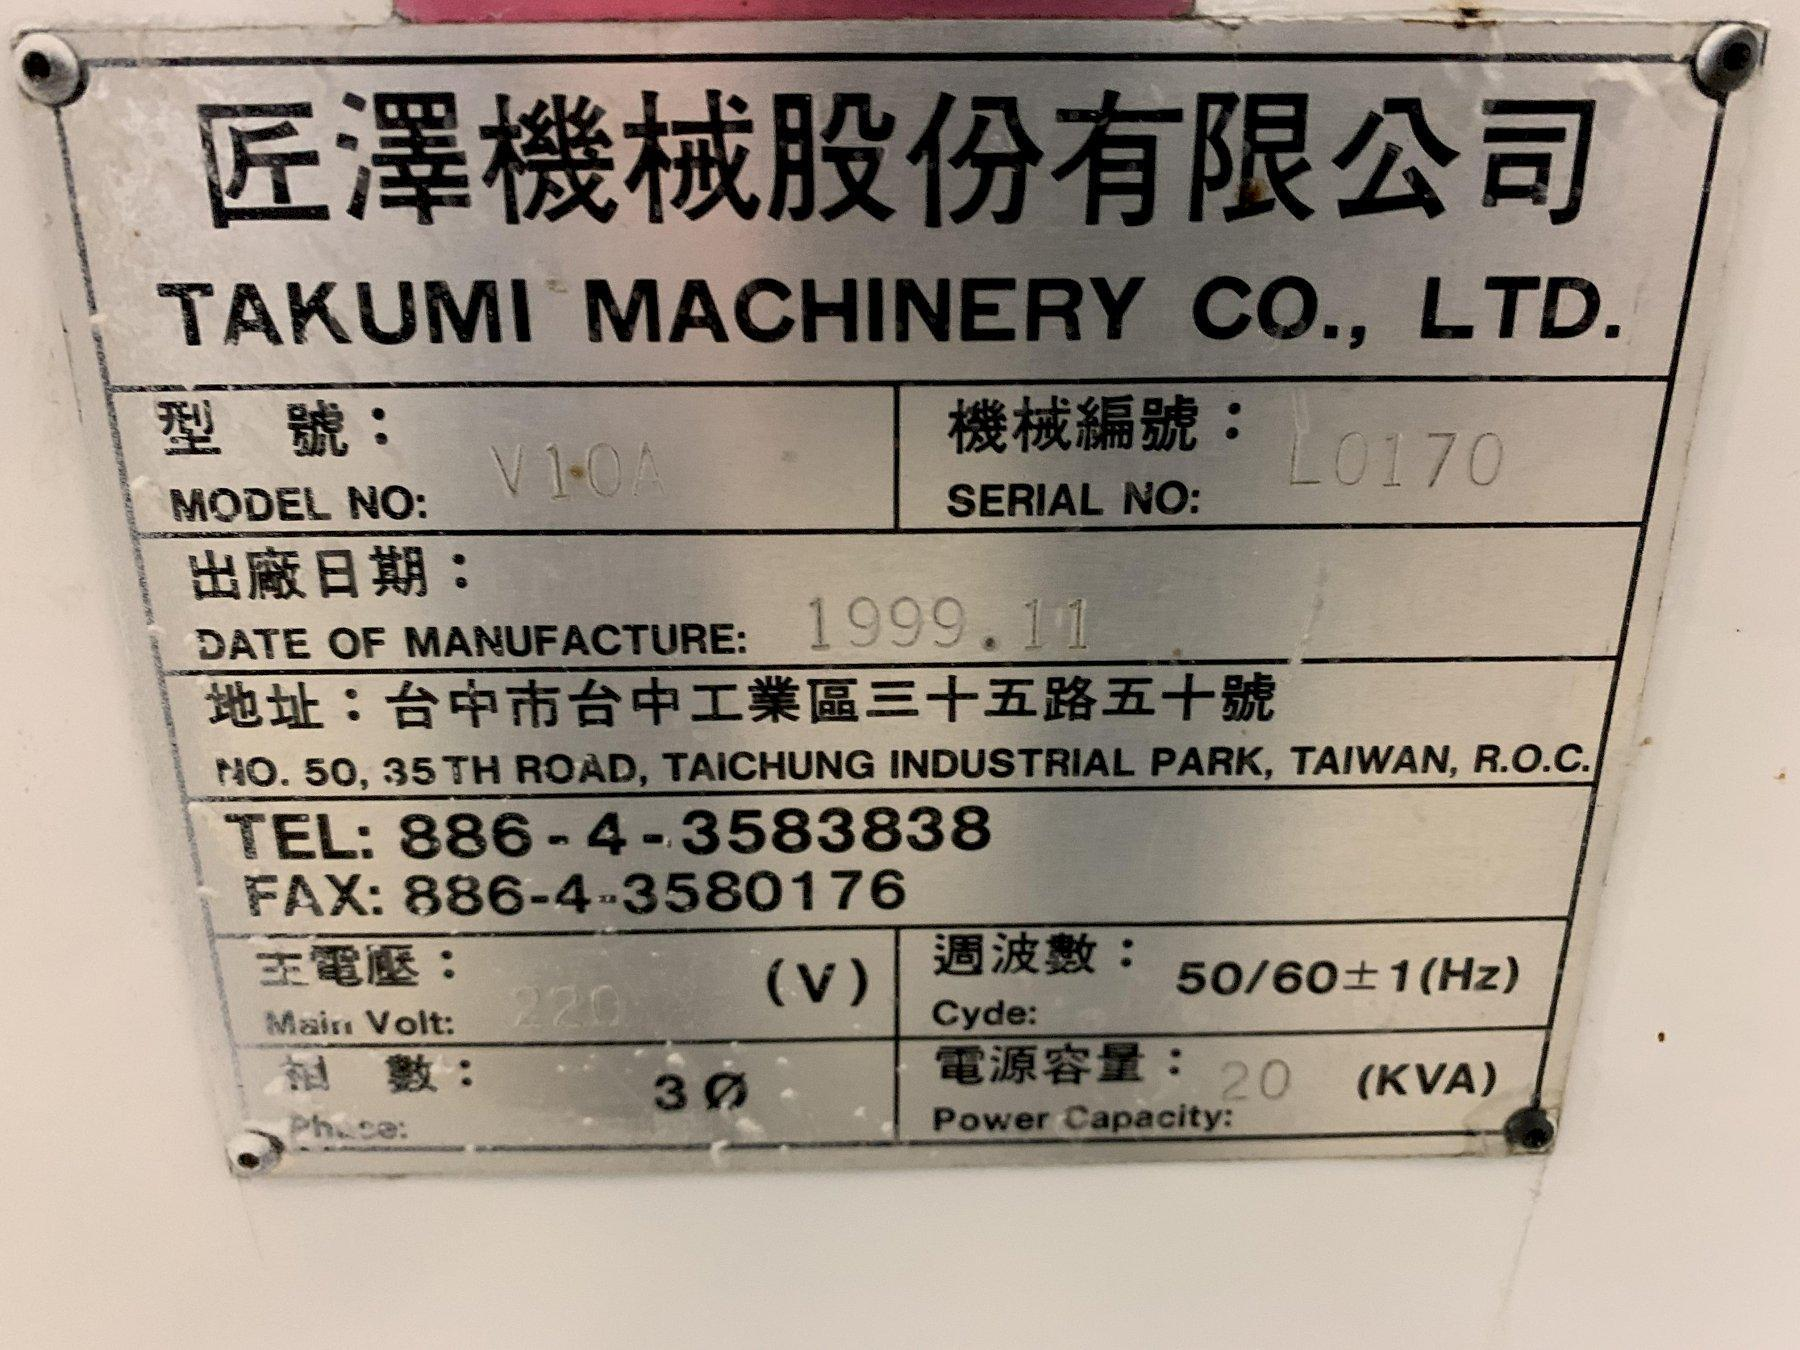 Takumi Model V10A CNC Vertical Machining Center, New 1999